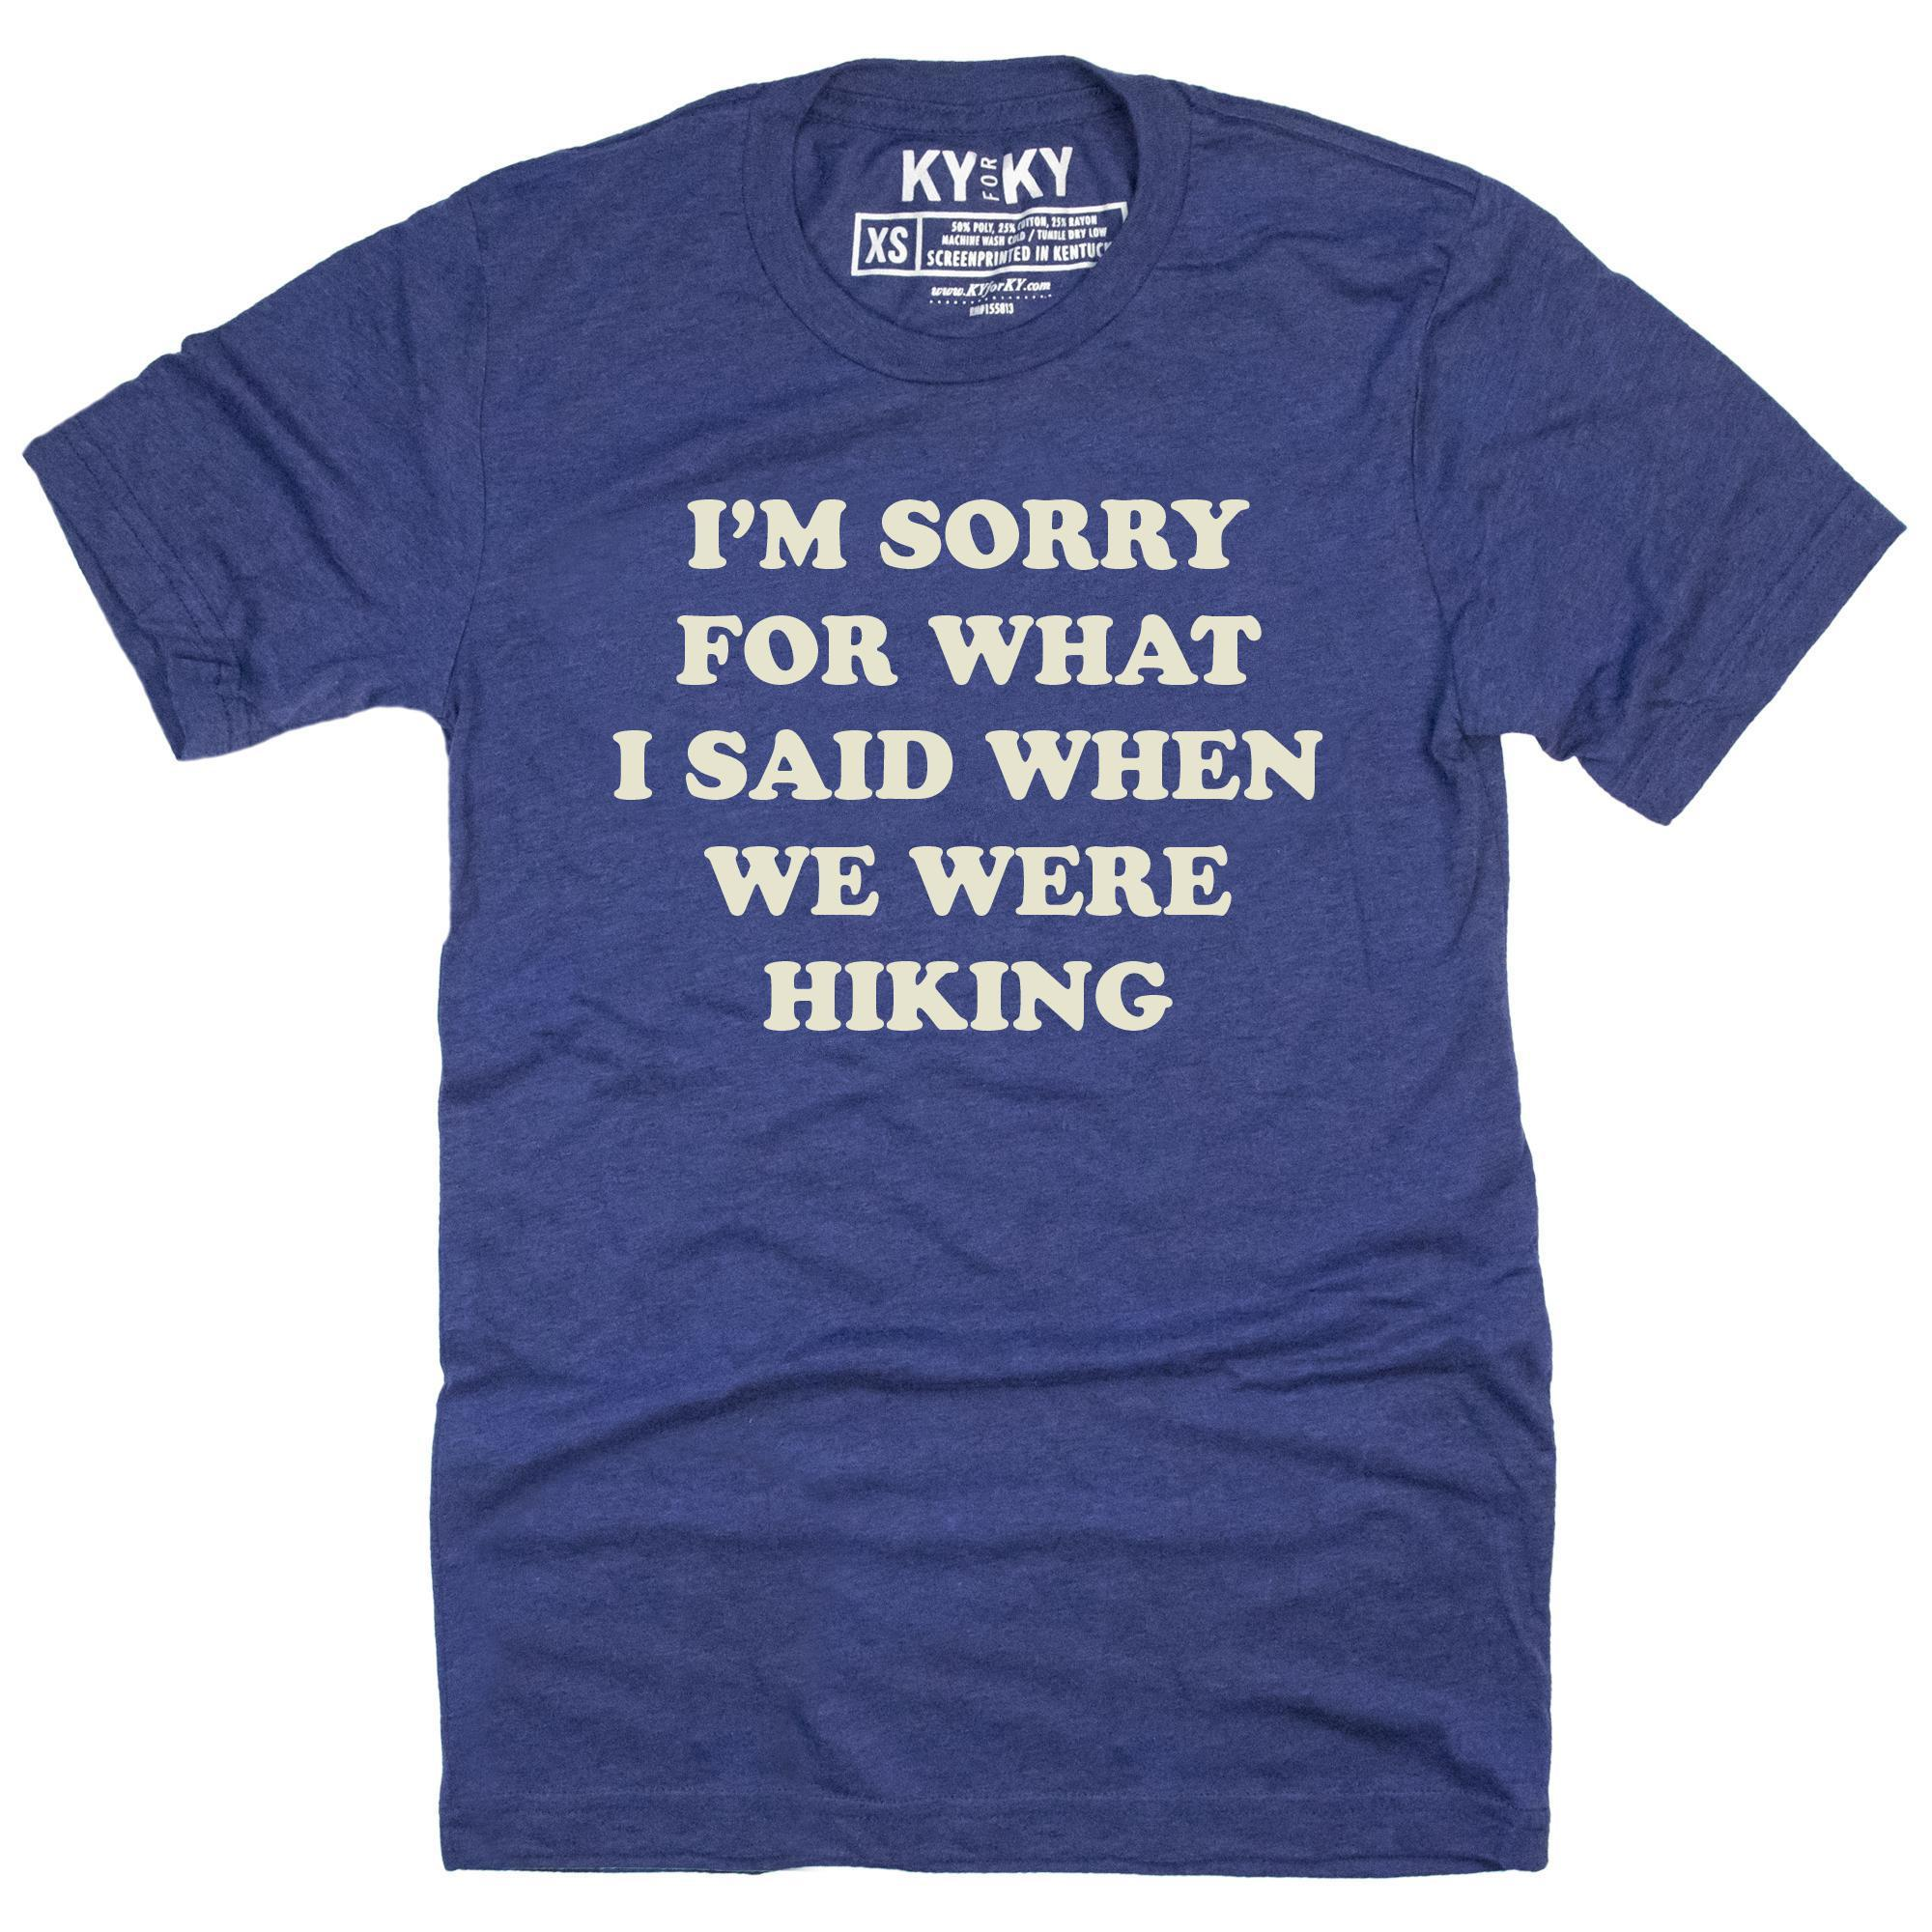 I'm Sorry For What I Said When Hiking T-Shirt-T-Shirt-Southern Socks